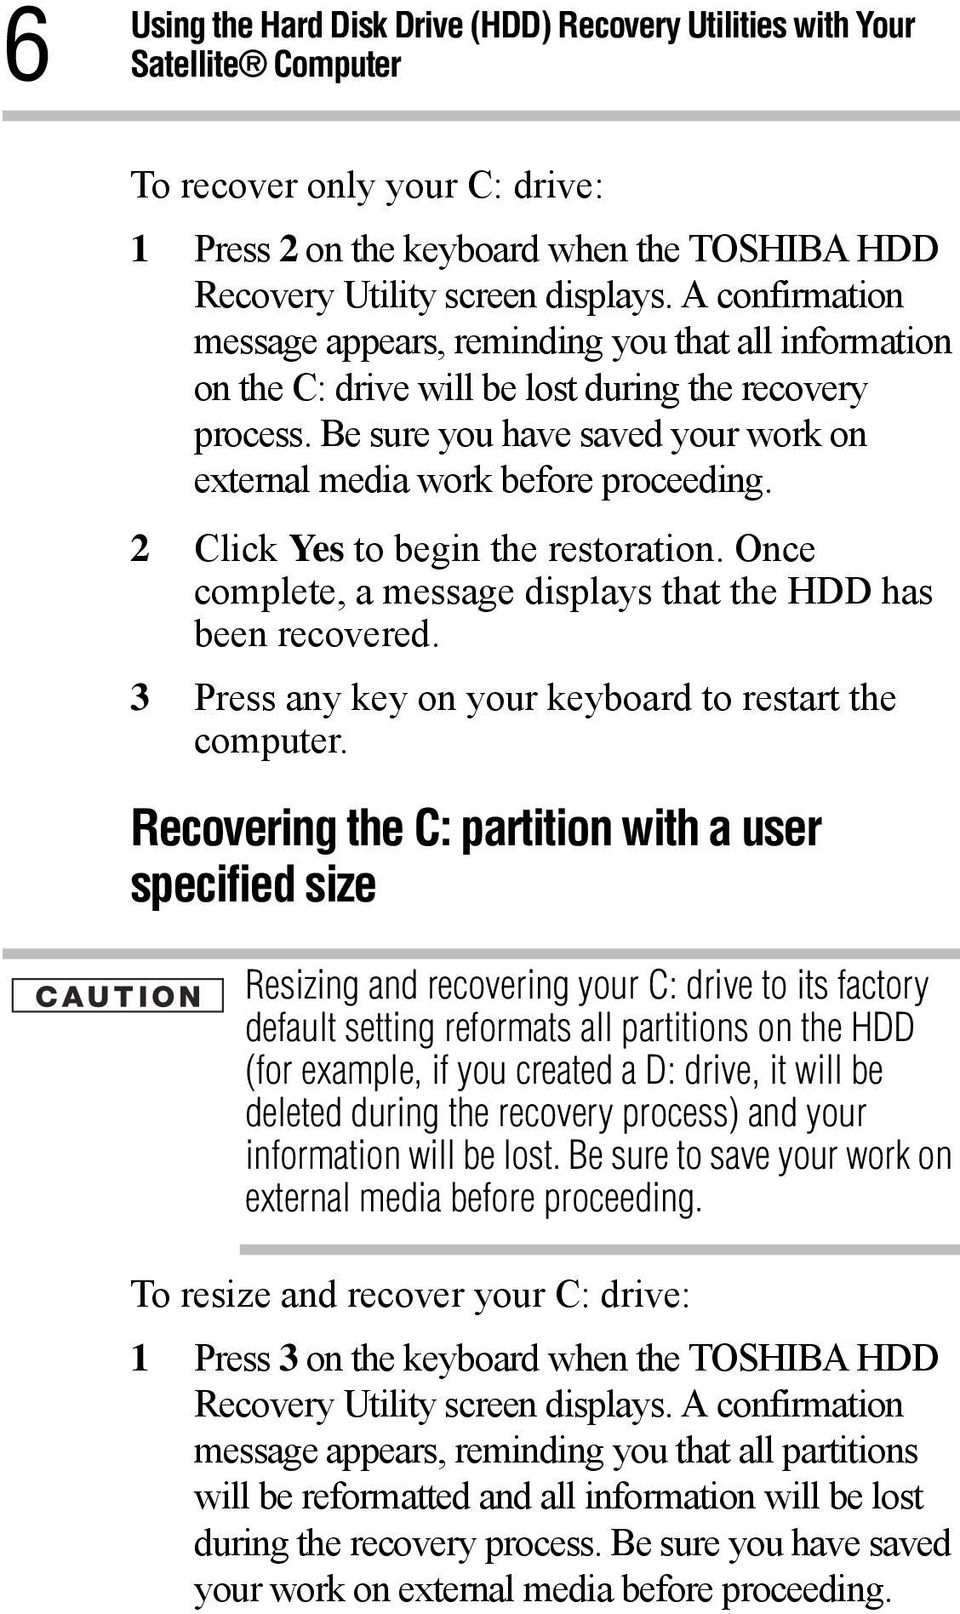 2 Click Yes to begin the restoration. Once complete, a message displays that the HDD has been recovered. 3 Press any key on your keyboard to restart the computer.